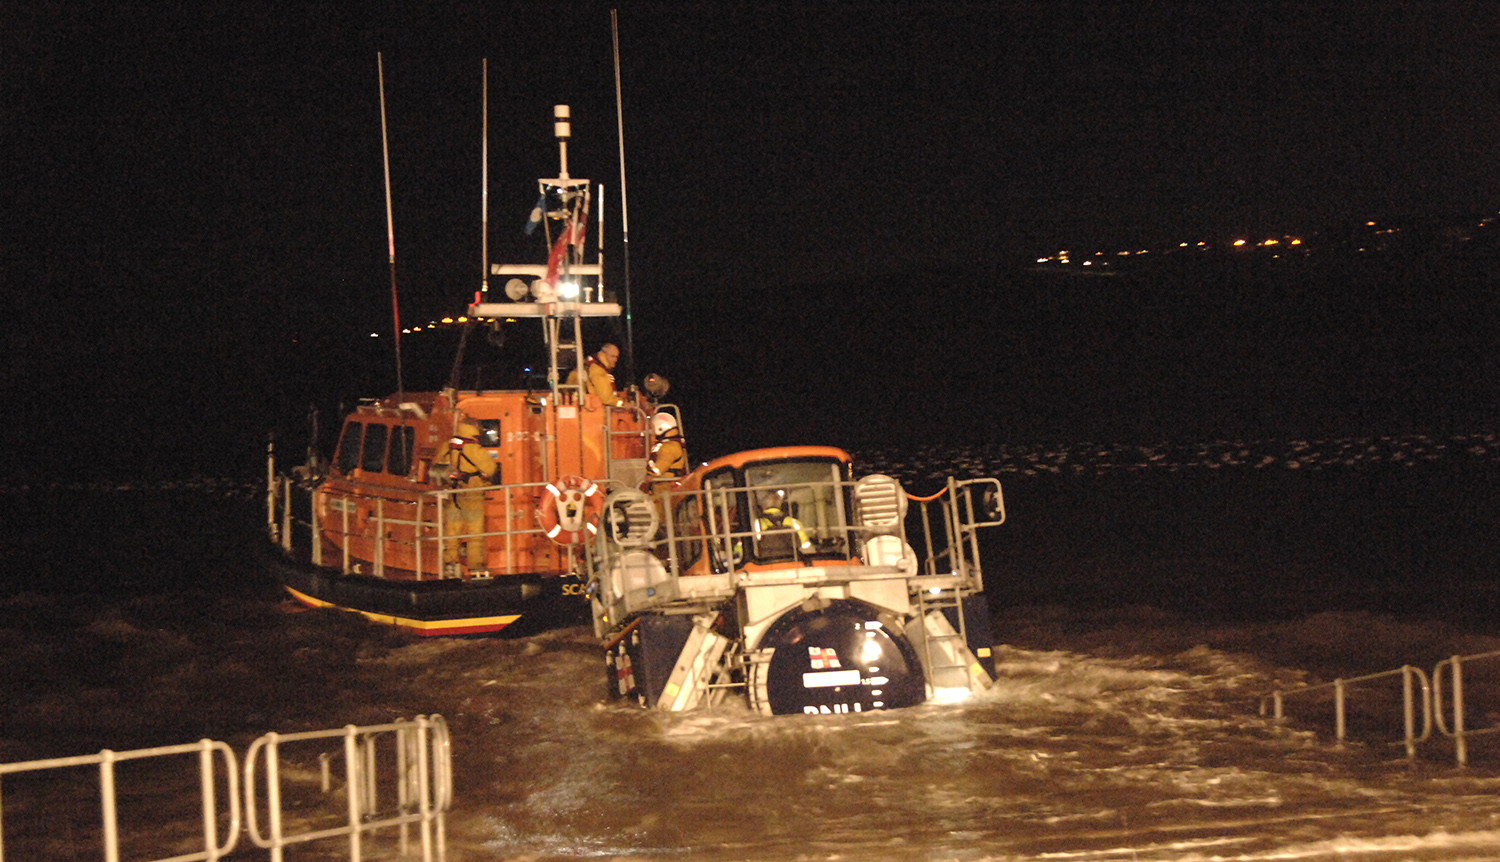 The Shannon being launched at night earlier this year